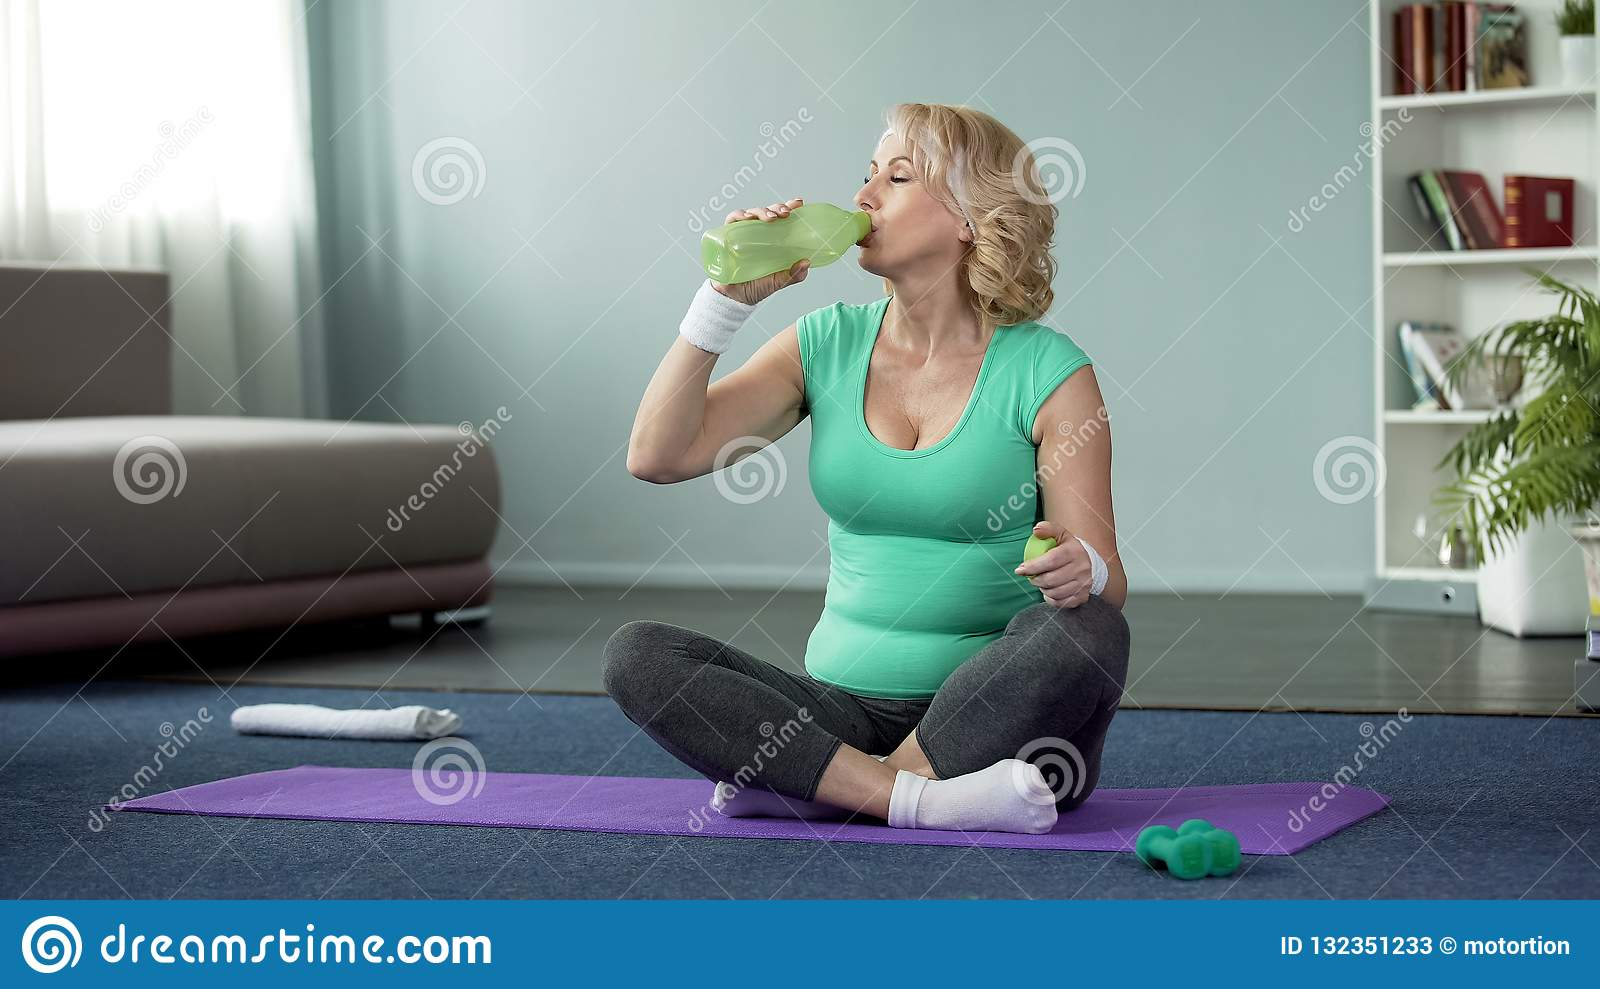 Athletic senior woman sitting on floor and drinking water after workout, health